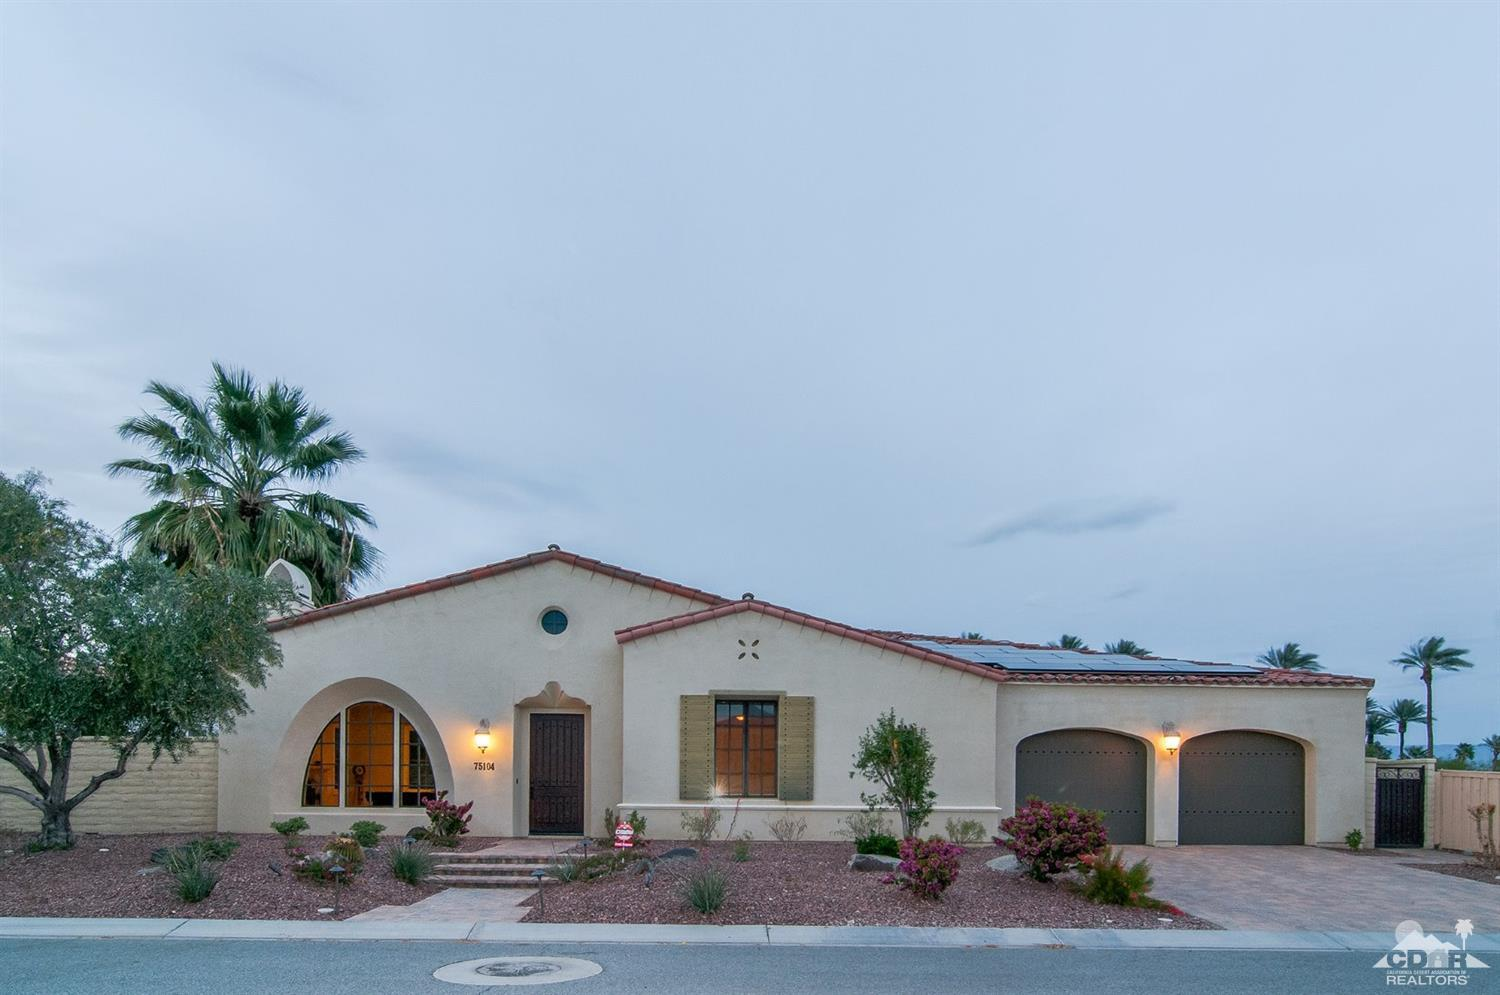 75104 Promontory Place, Indian Wells, CA 92210